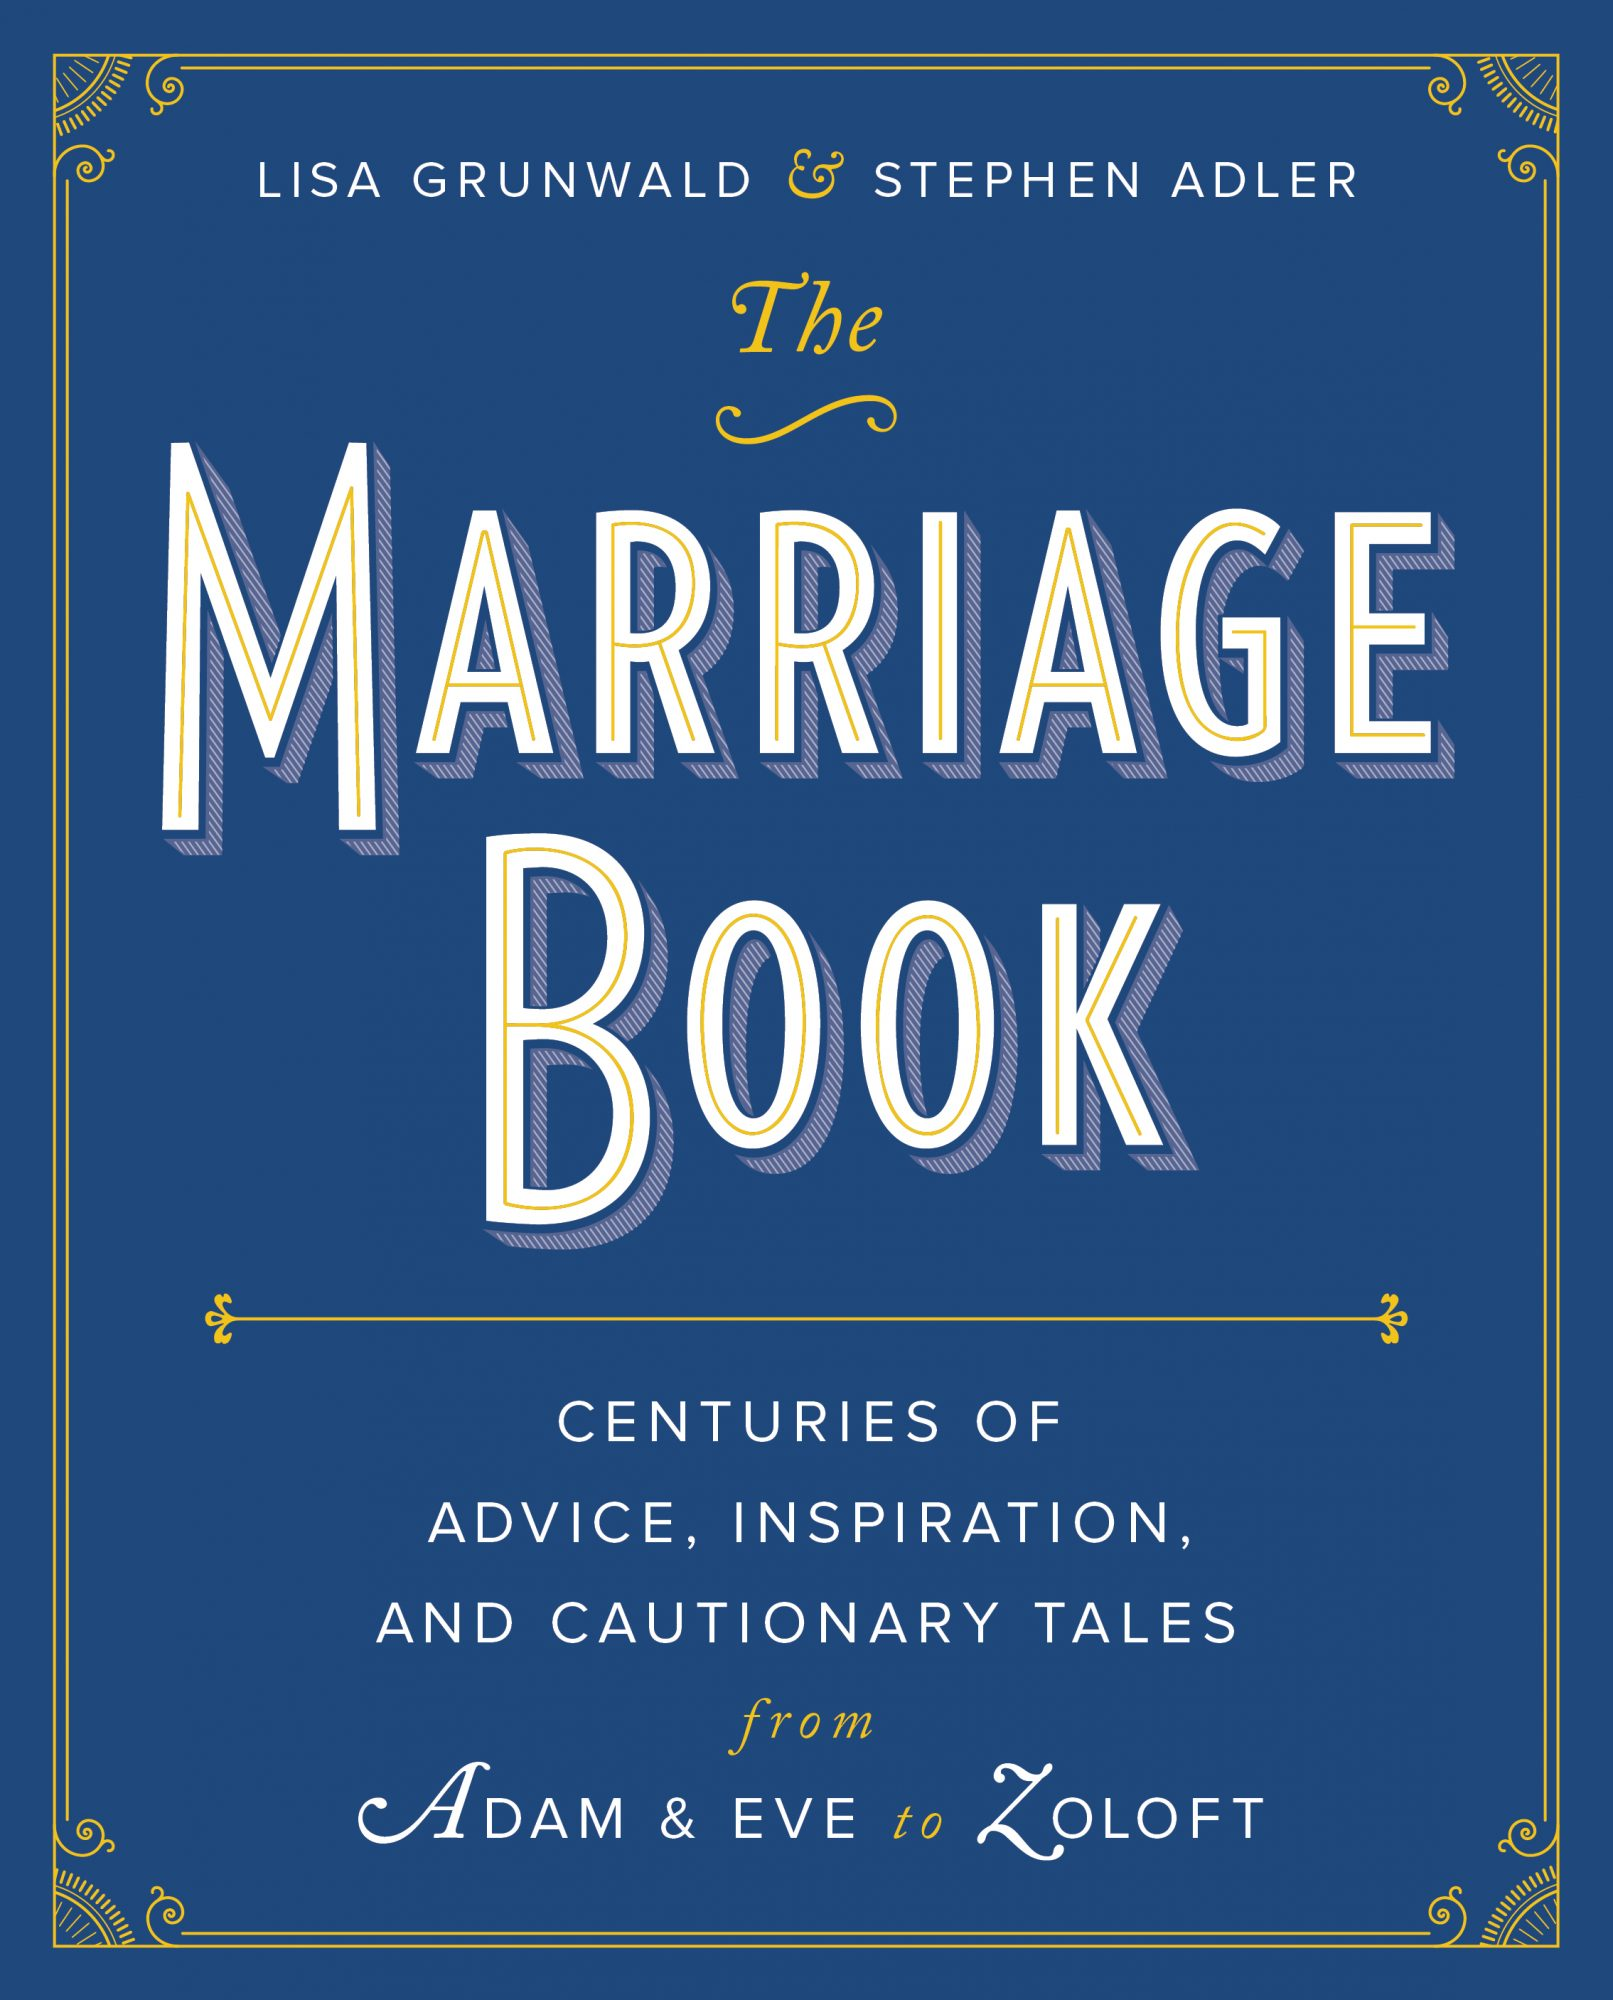 The Marriage Book cover.